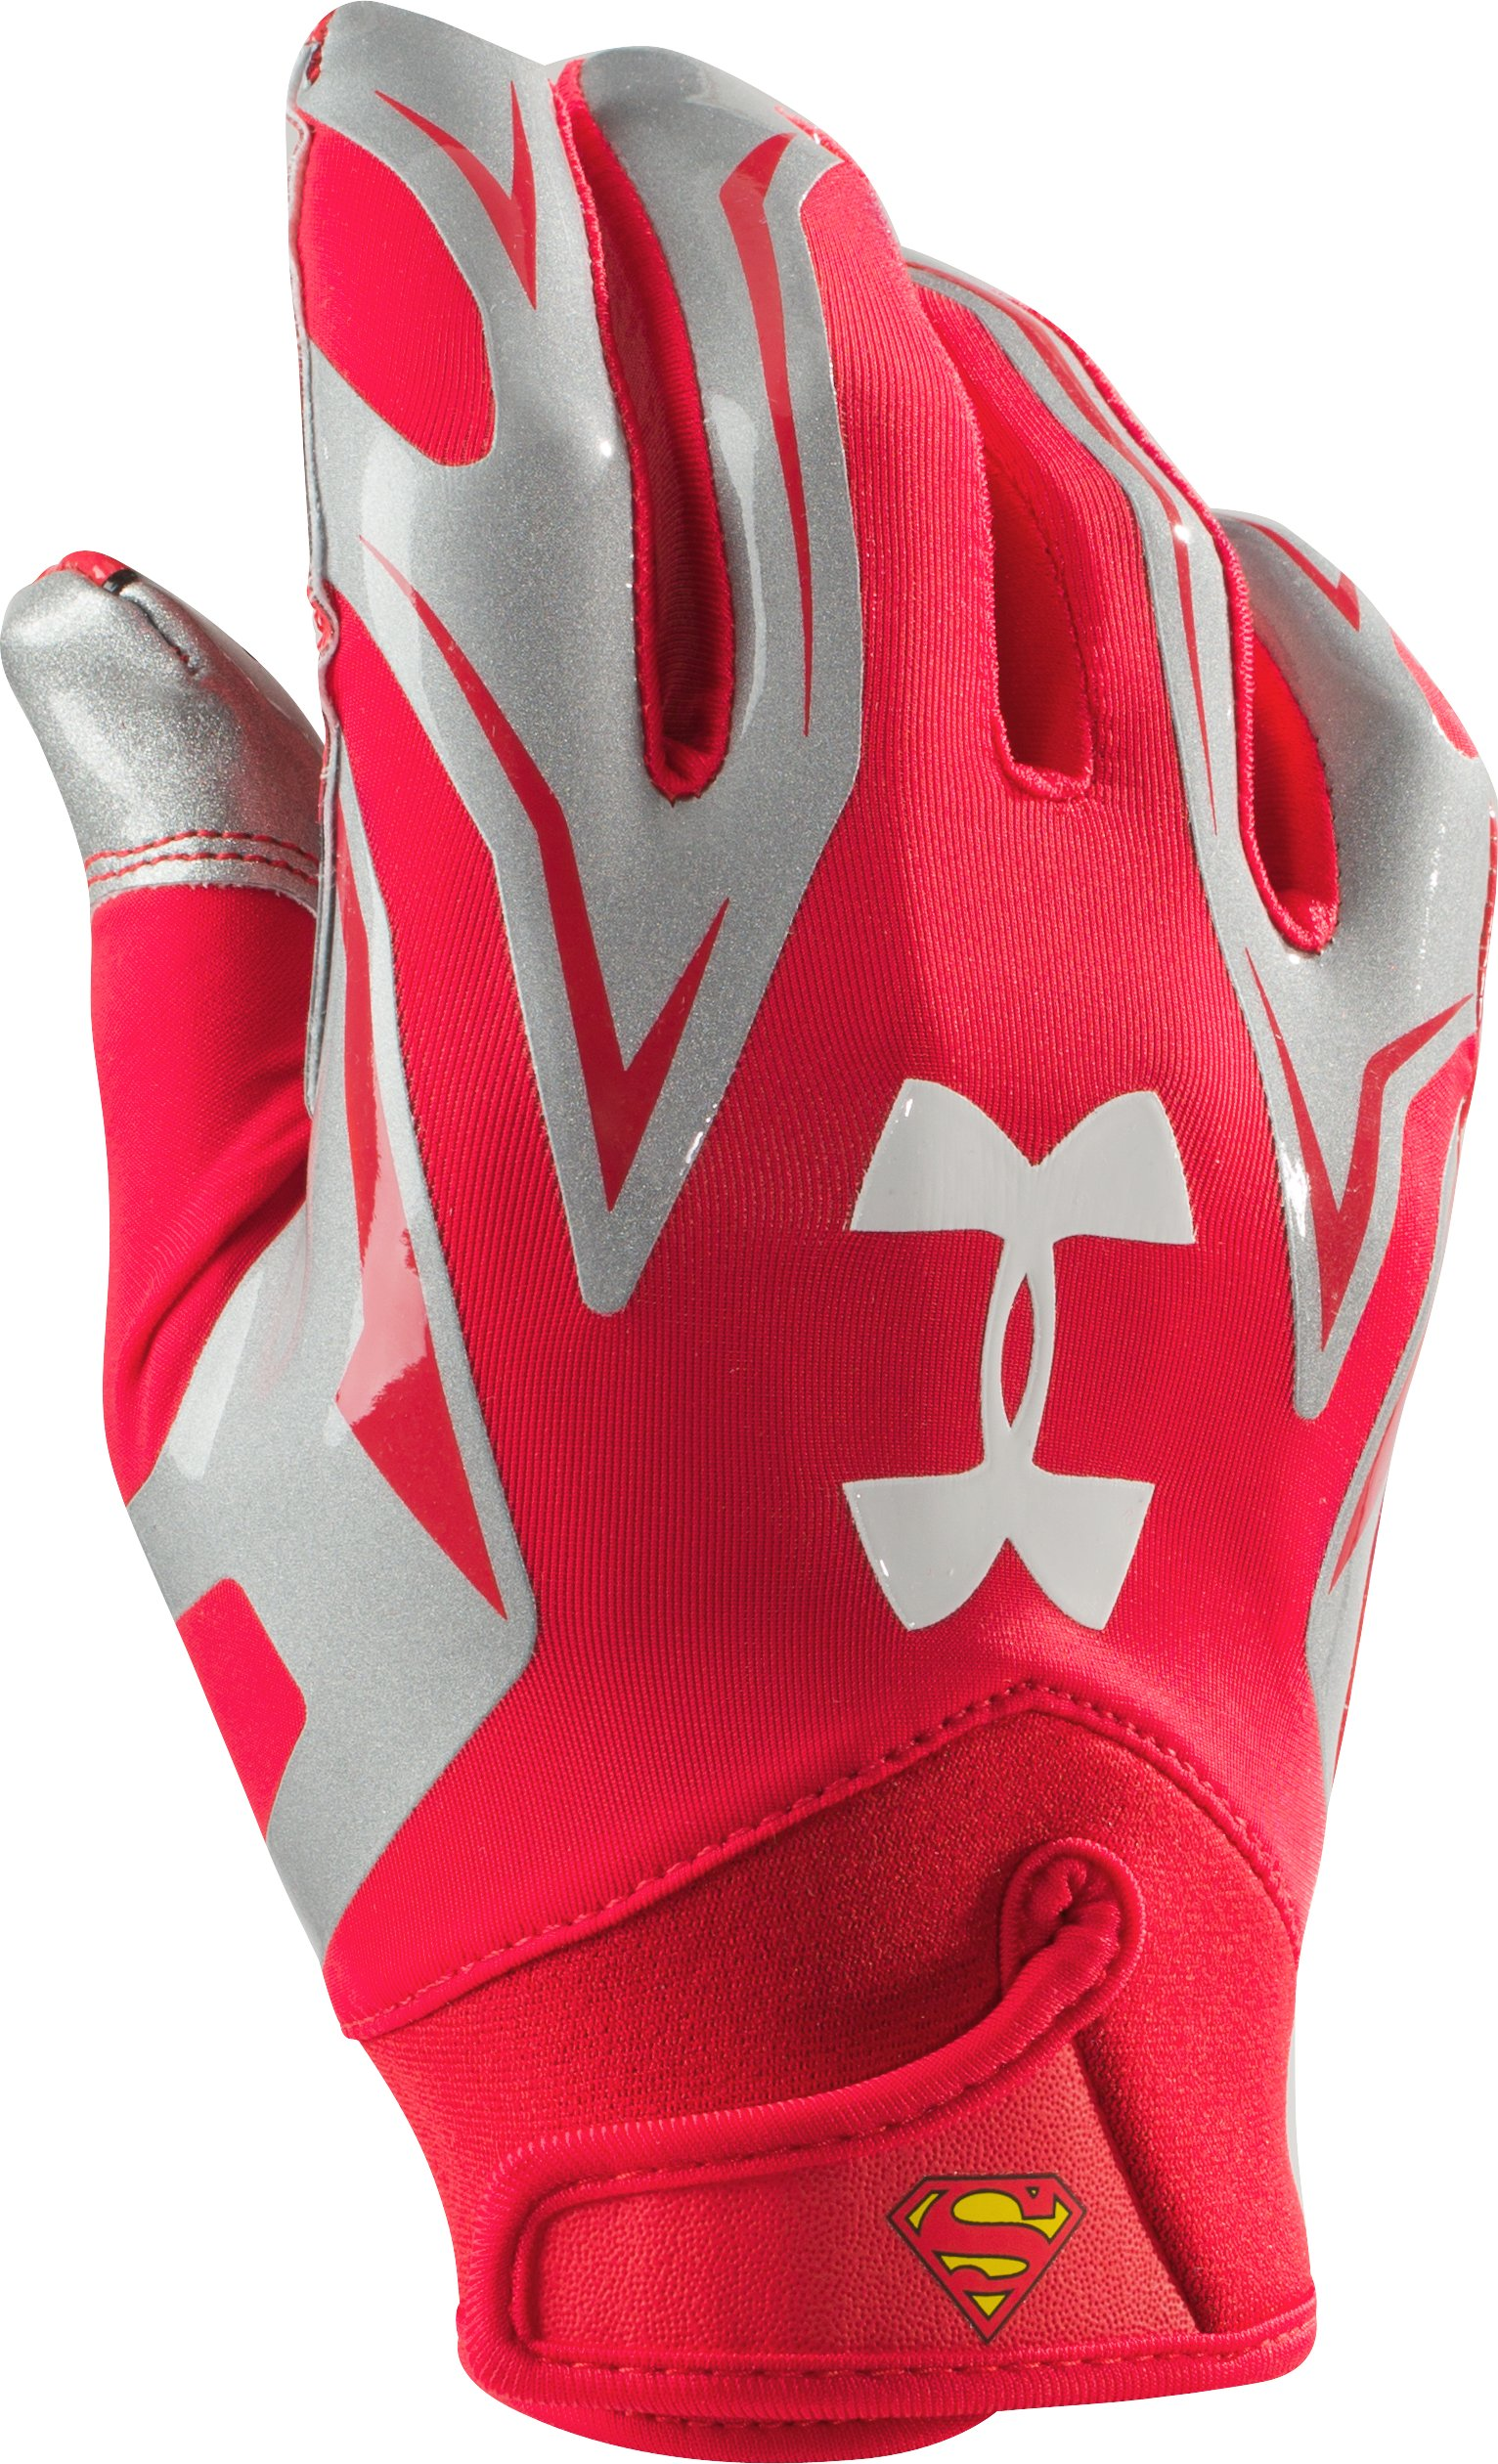 Men's Under Armour® Alter Ego F4 Football Gloves, Red